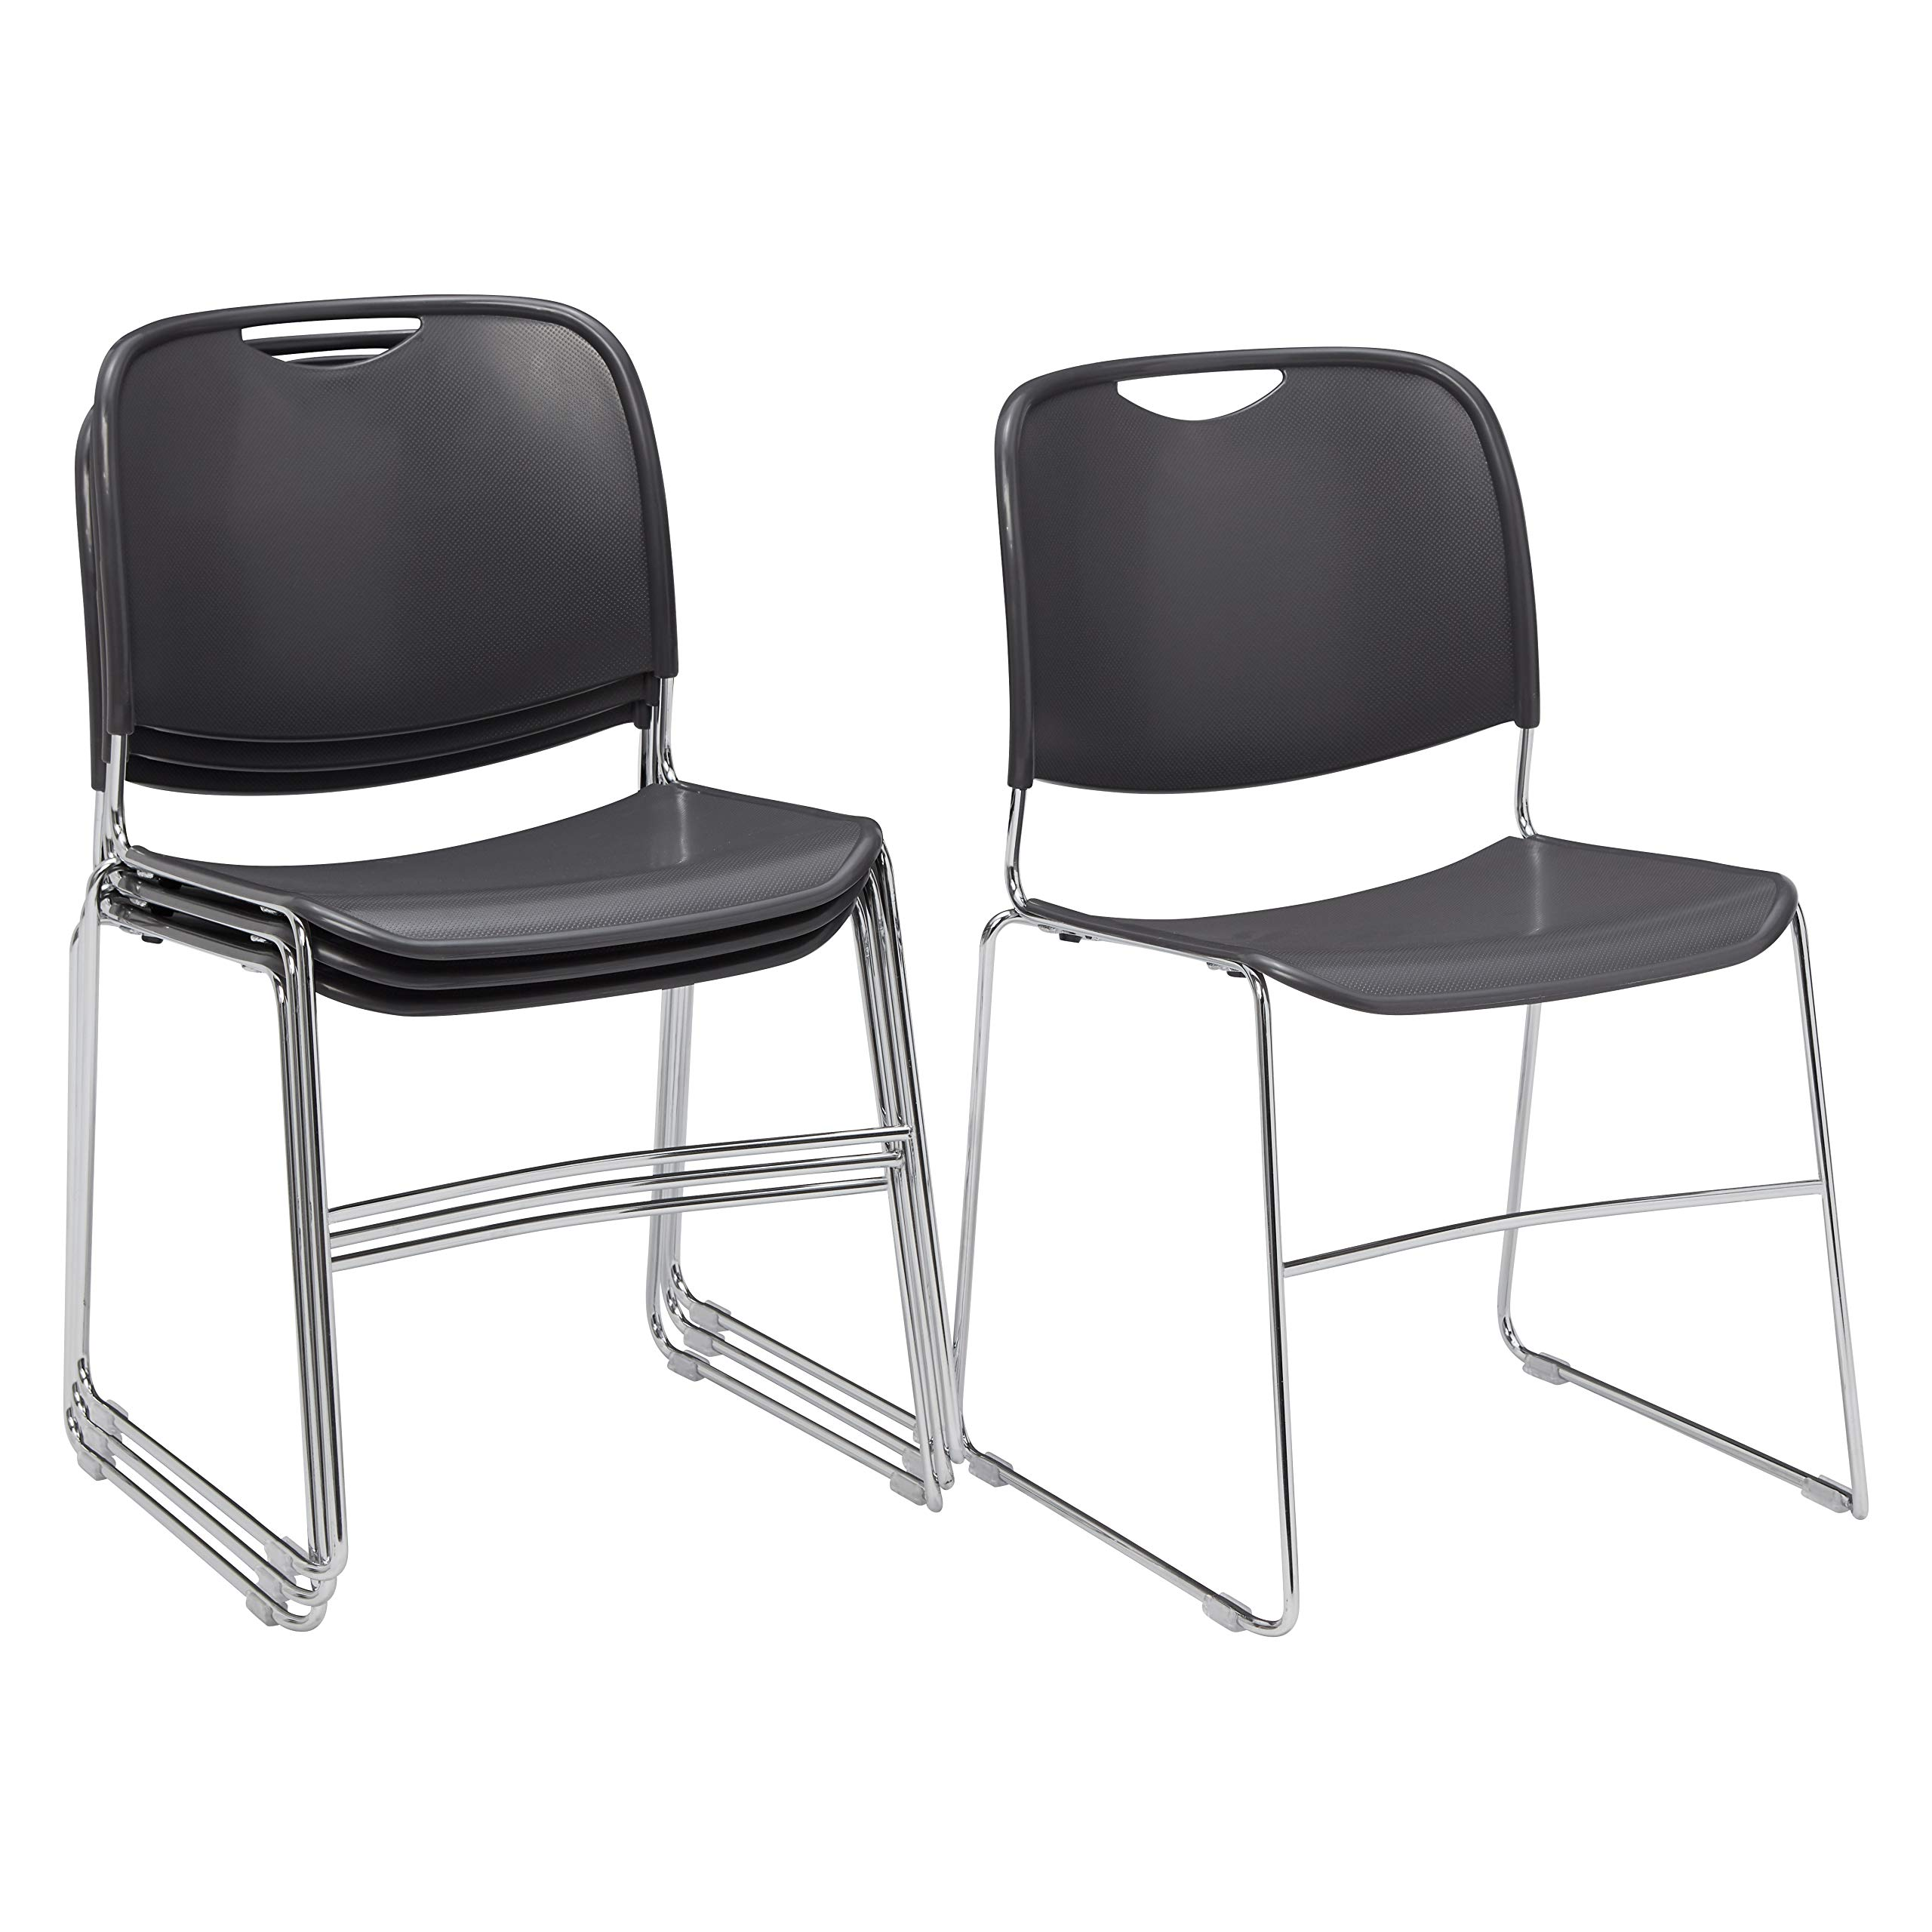 (4 Pack) National Public Seating 8500 Series Ultra-Compact Plastic Stack Chair, Gunmetal